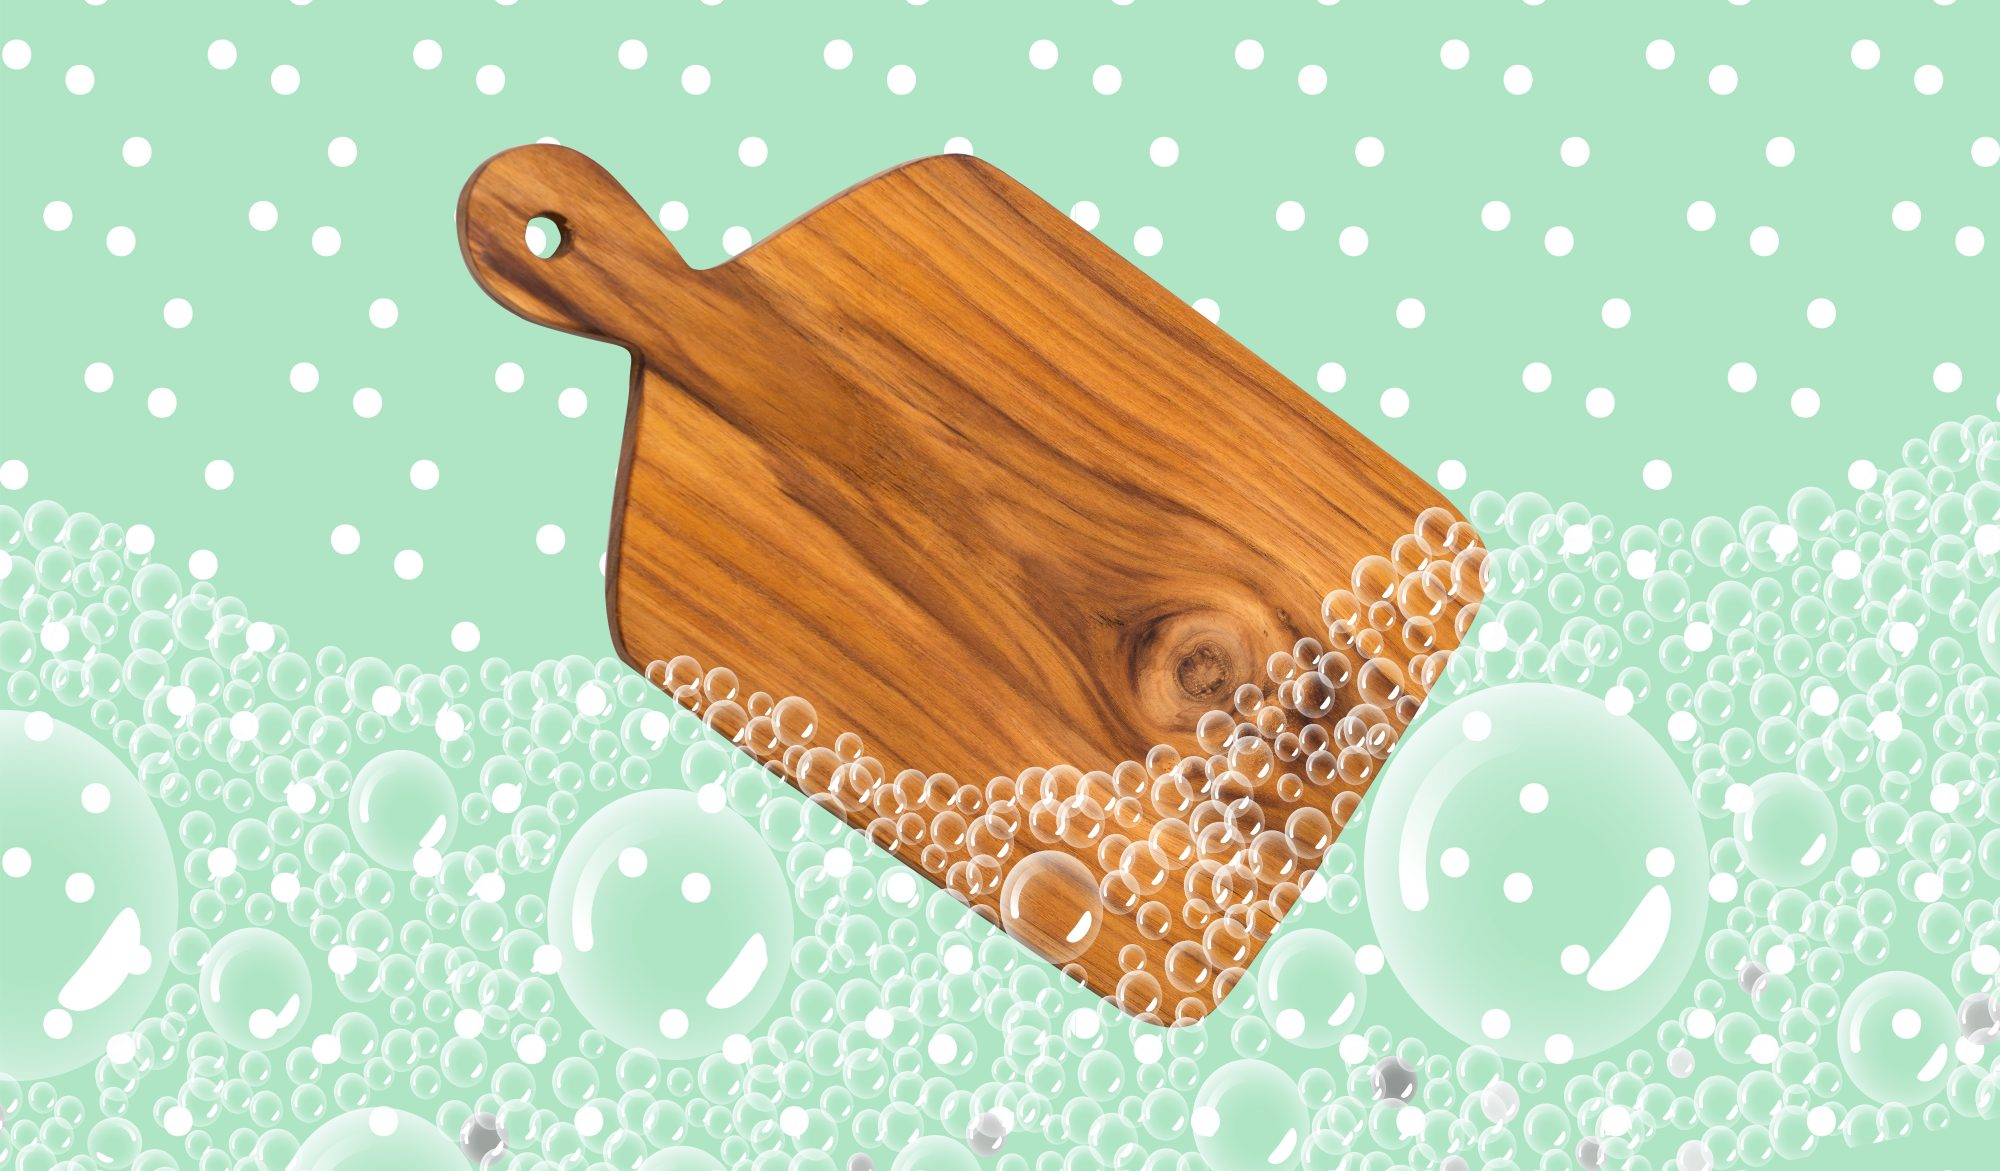 5 Ways to Clean and Maintain Your Wood Cutting Board to Keep It Germ-Free